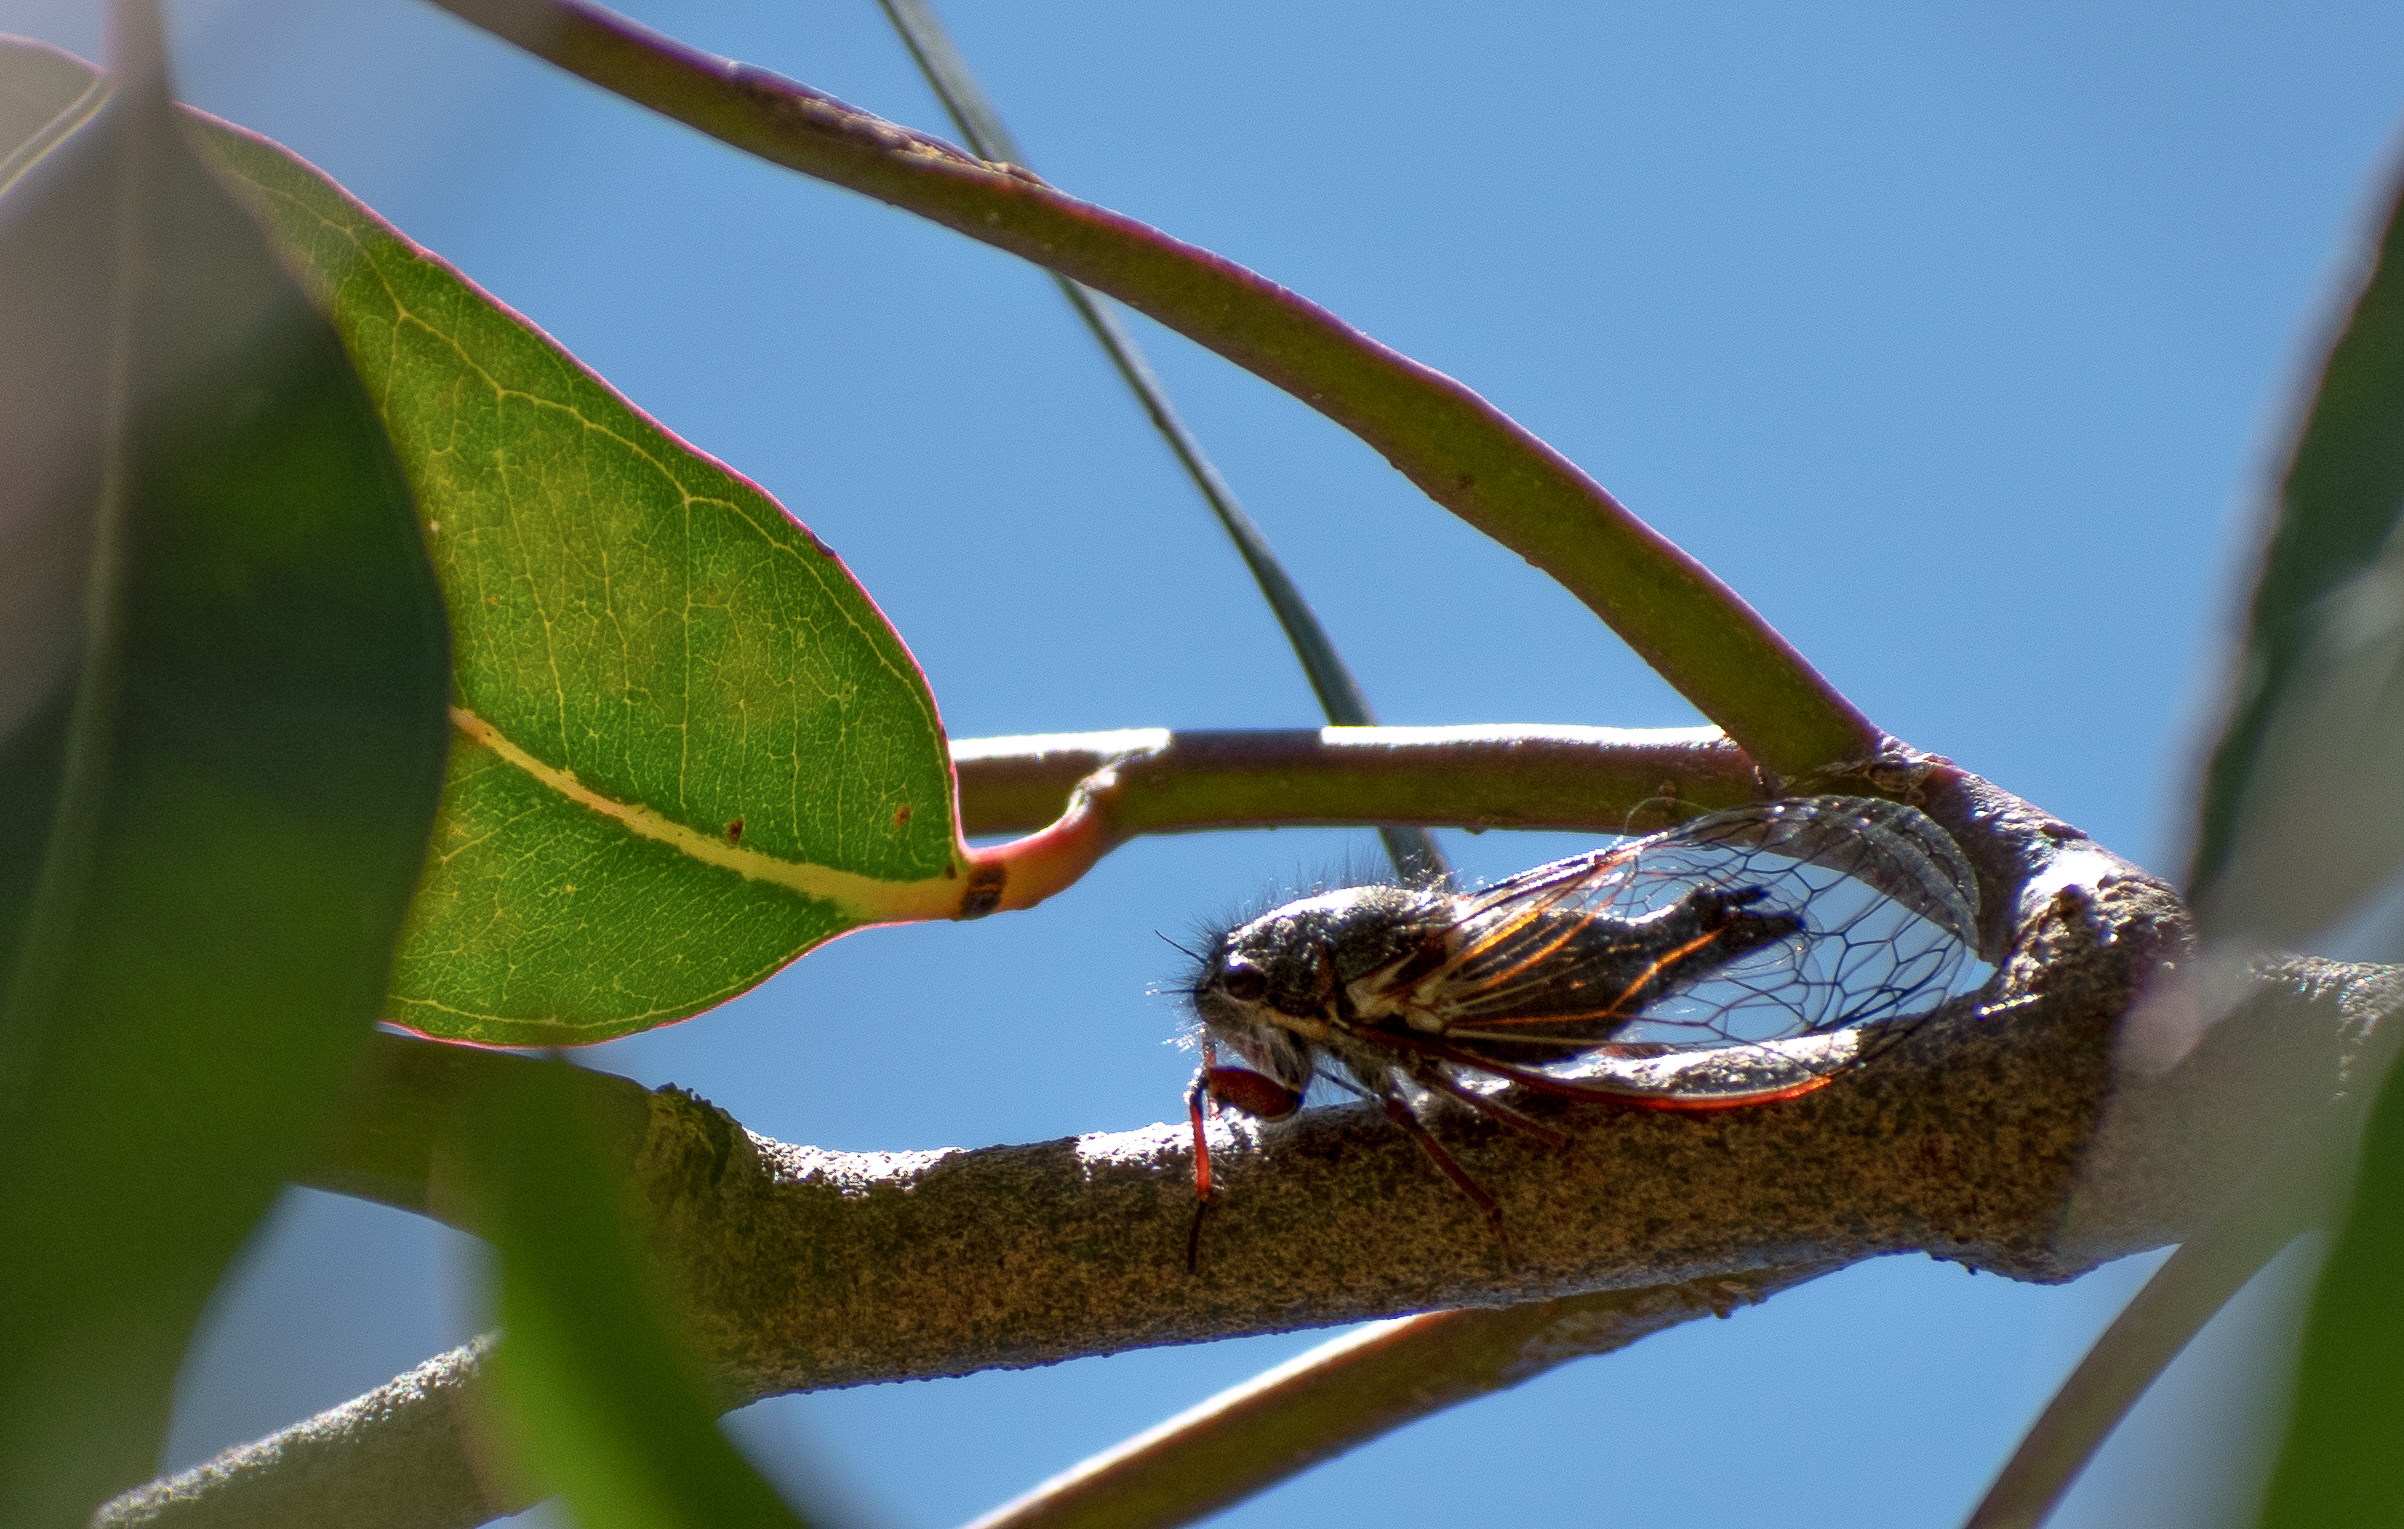 A large winged insect on a branch.